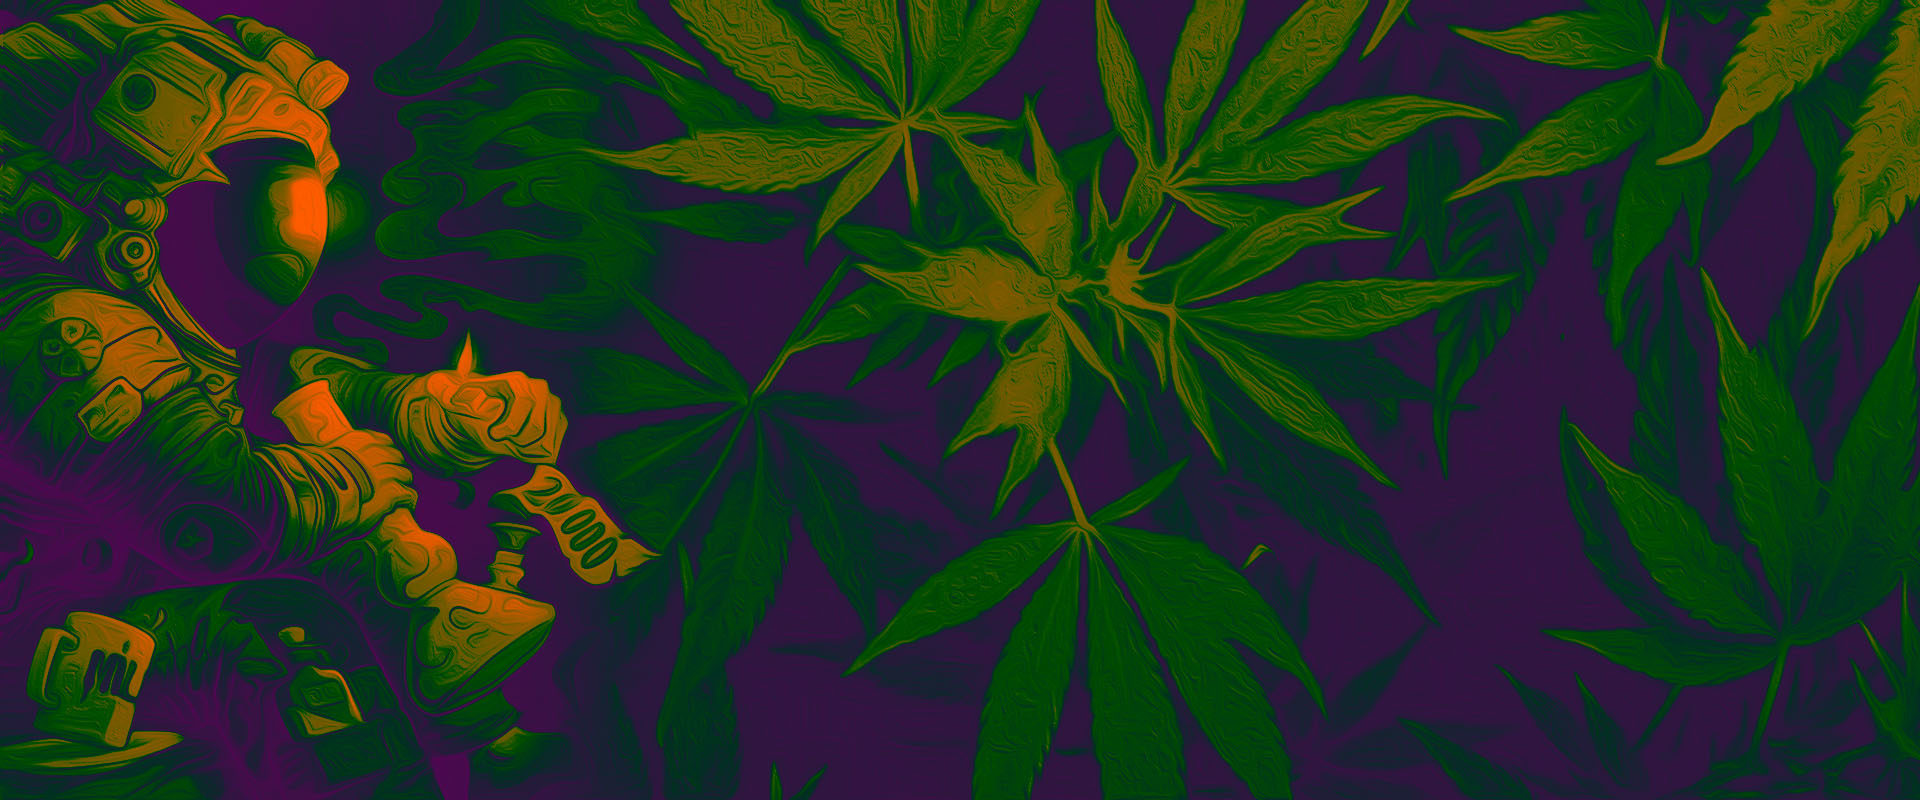 http://www.kushcousins.life/wp-content/uploads/2019/08/Home-Page-Banner1-1920x800.jpg